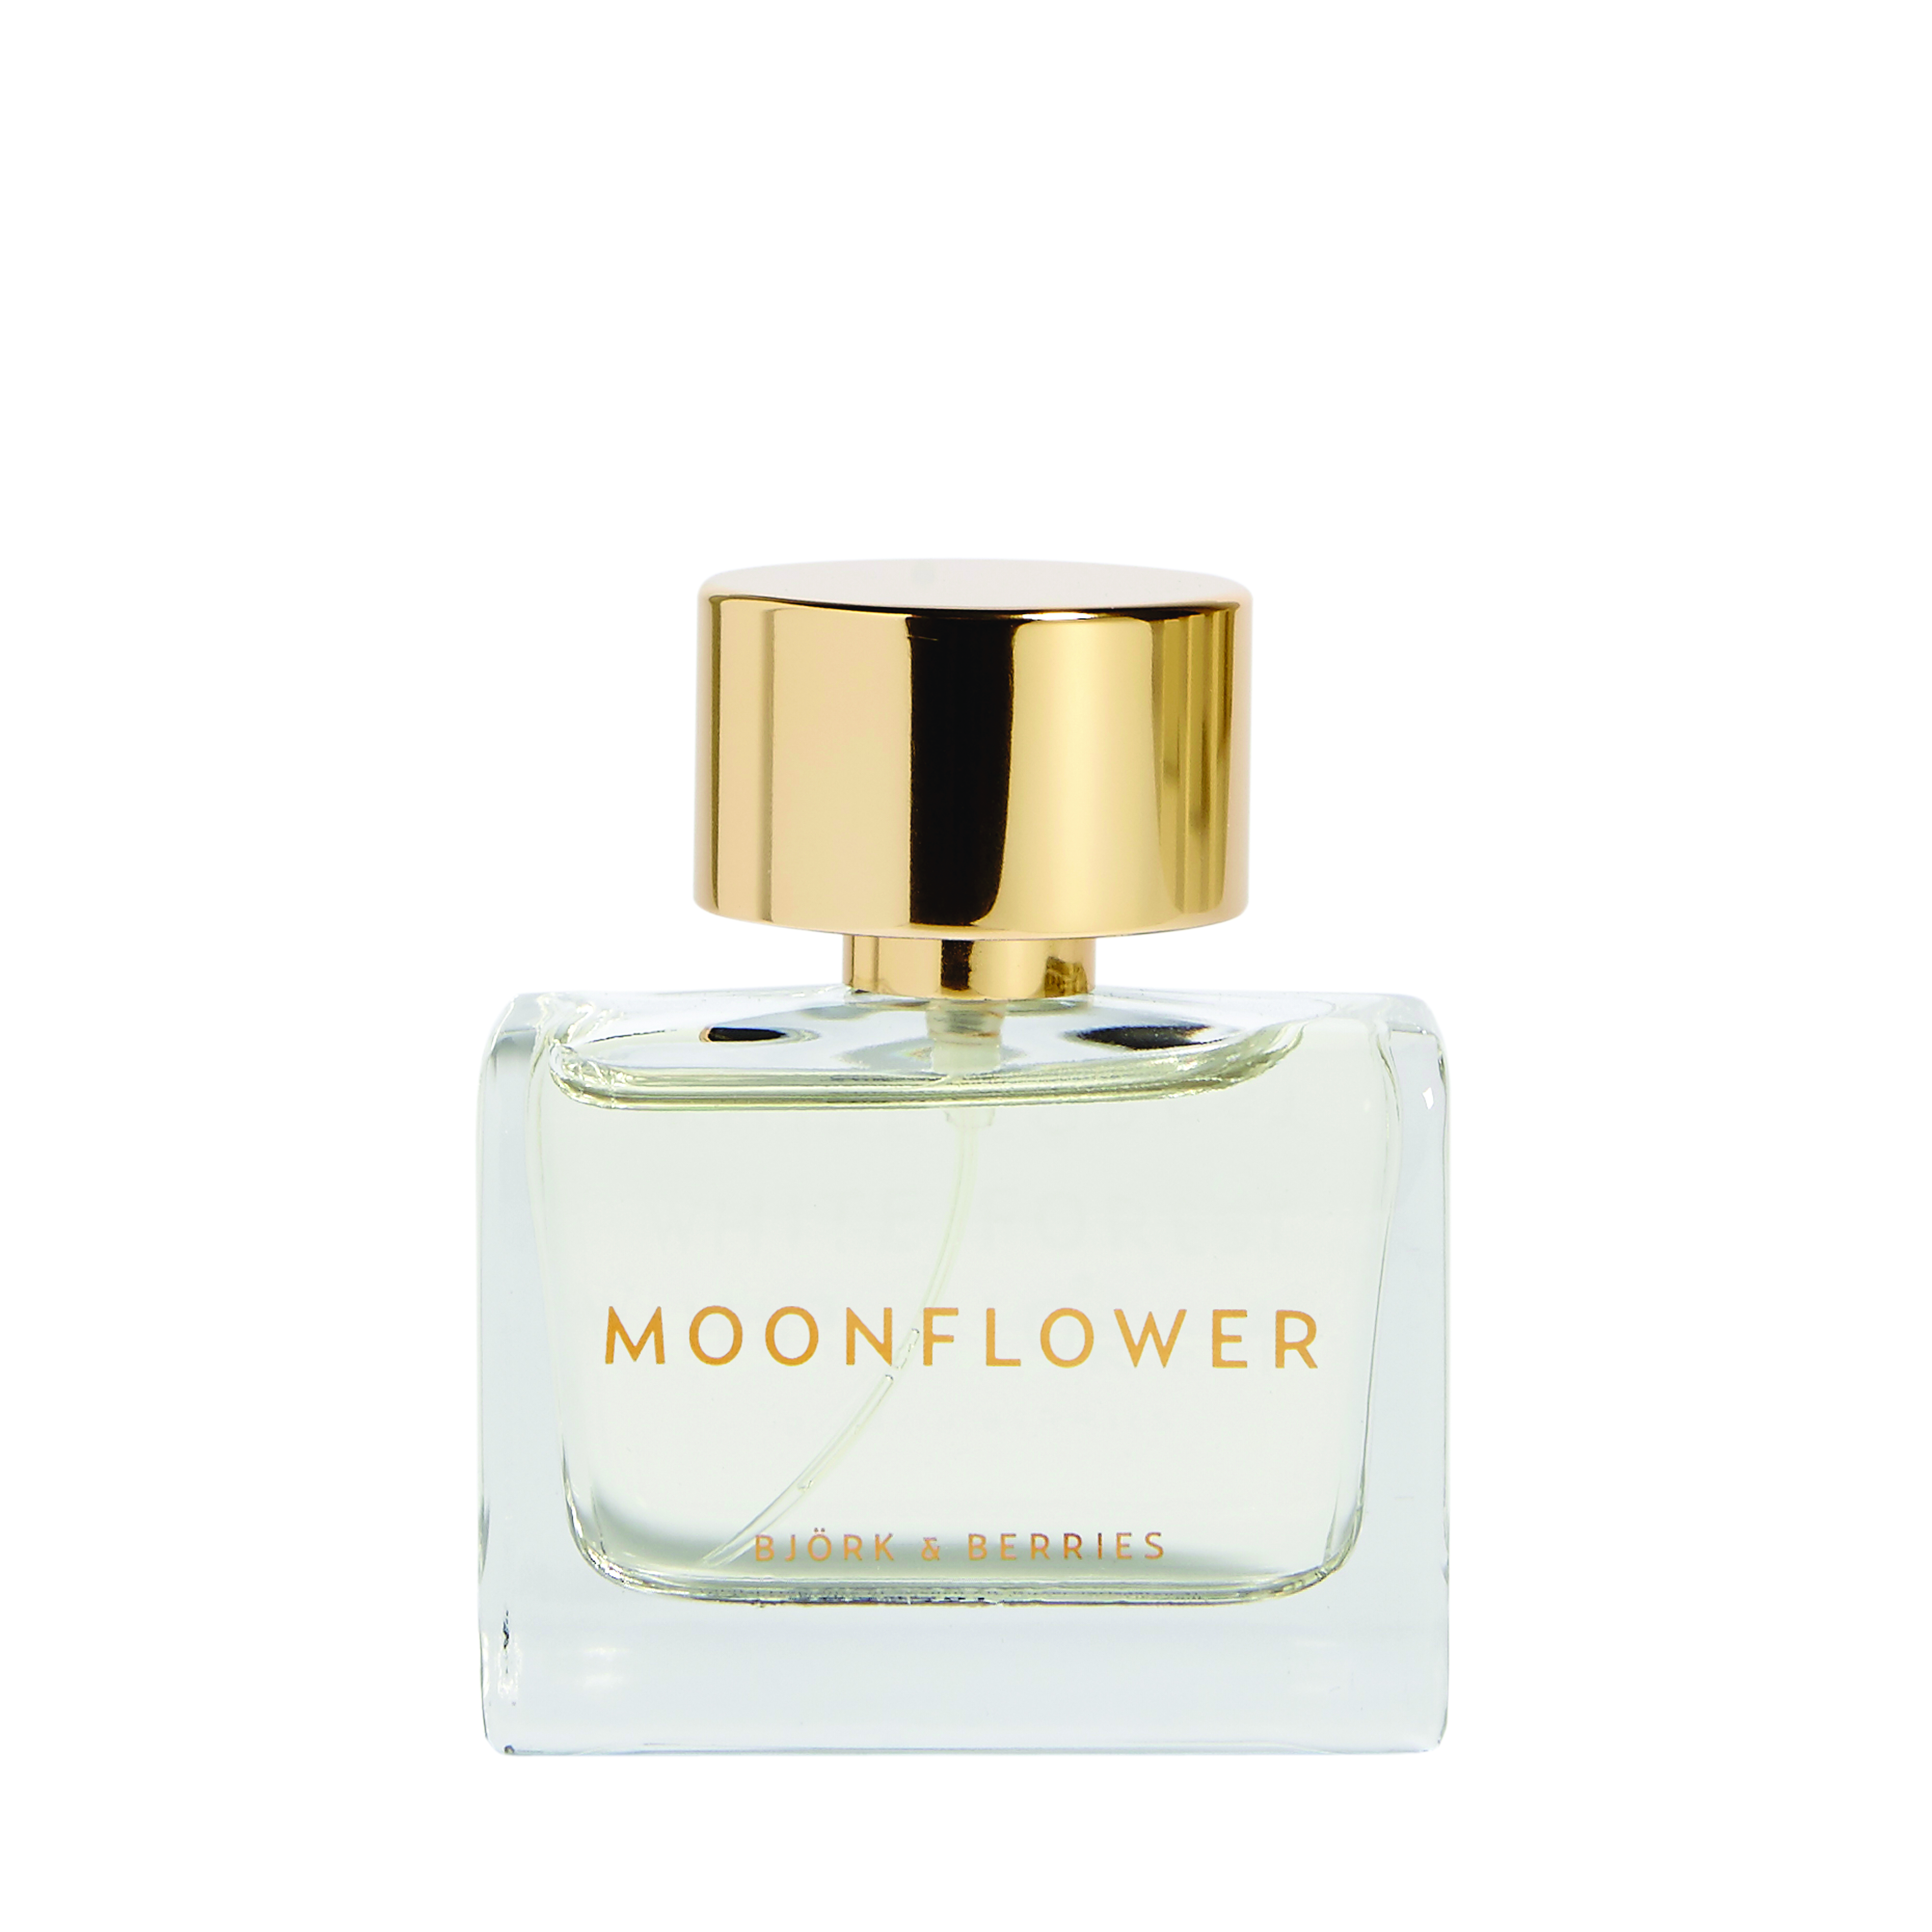 Moonflower Edp